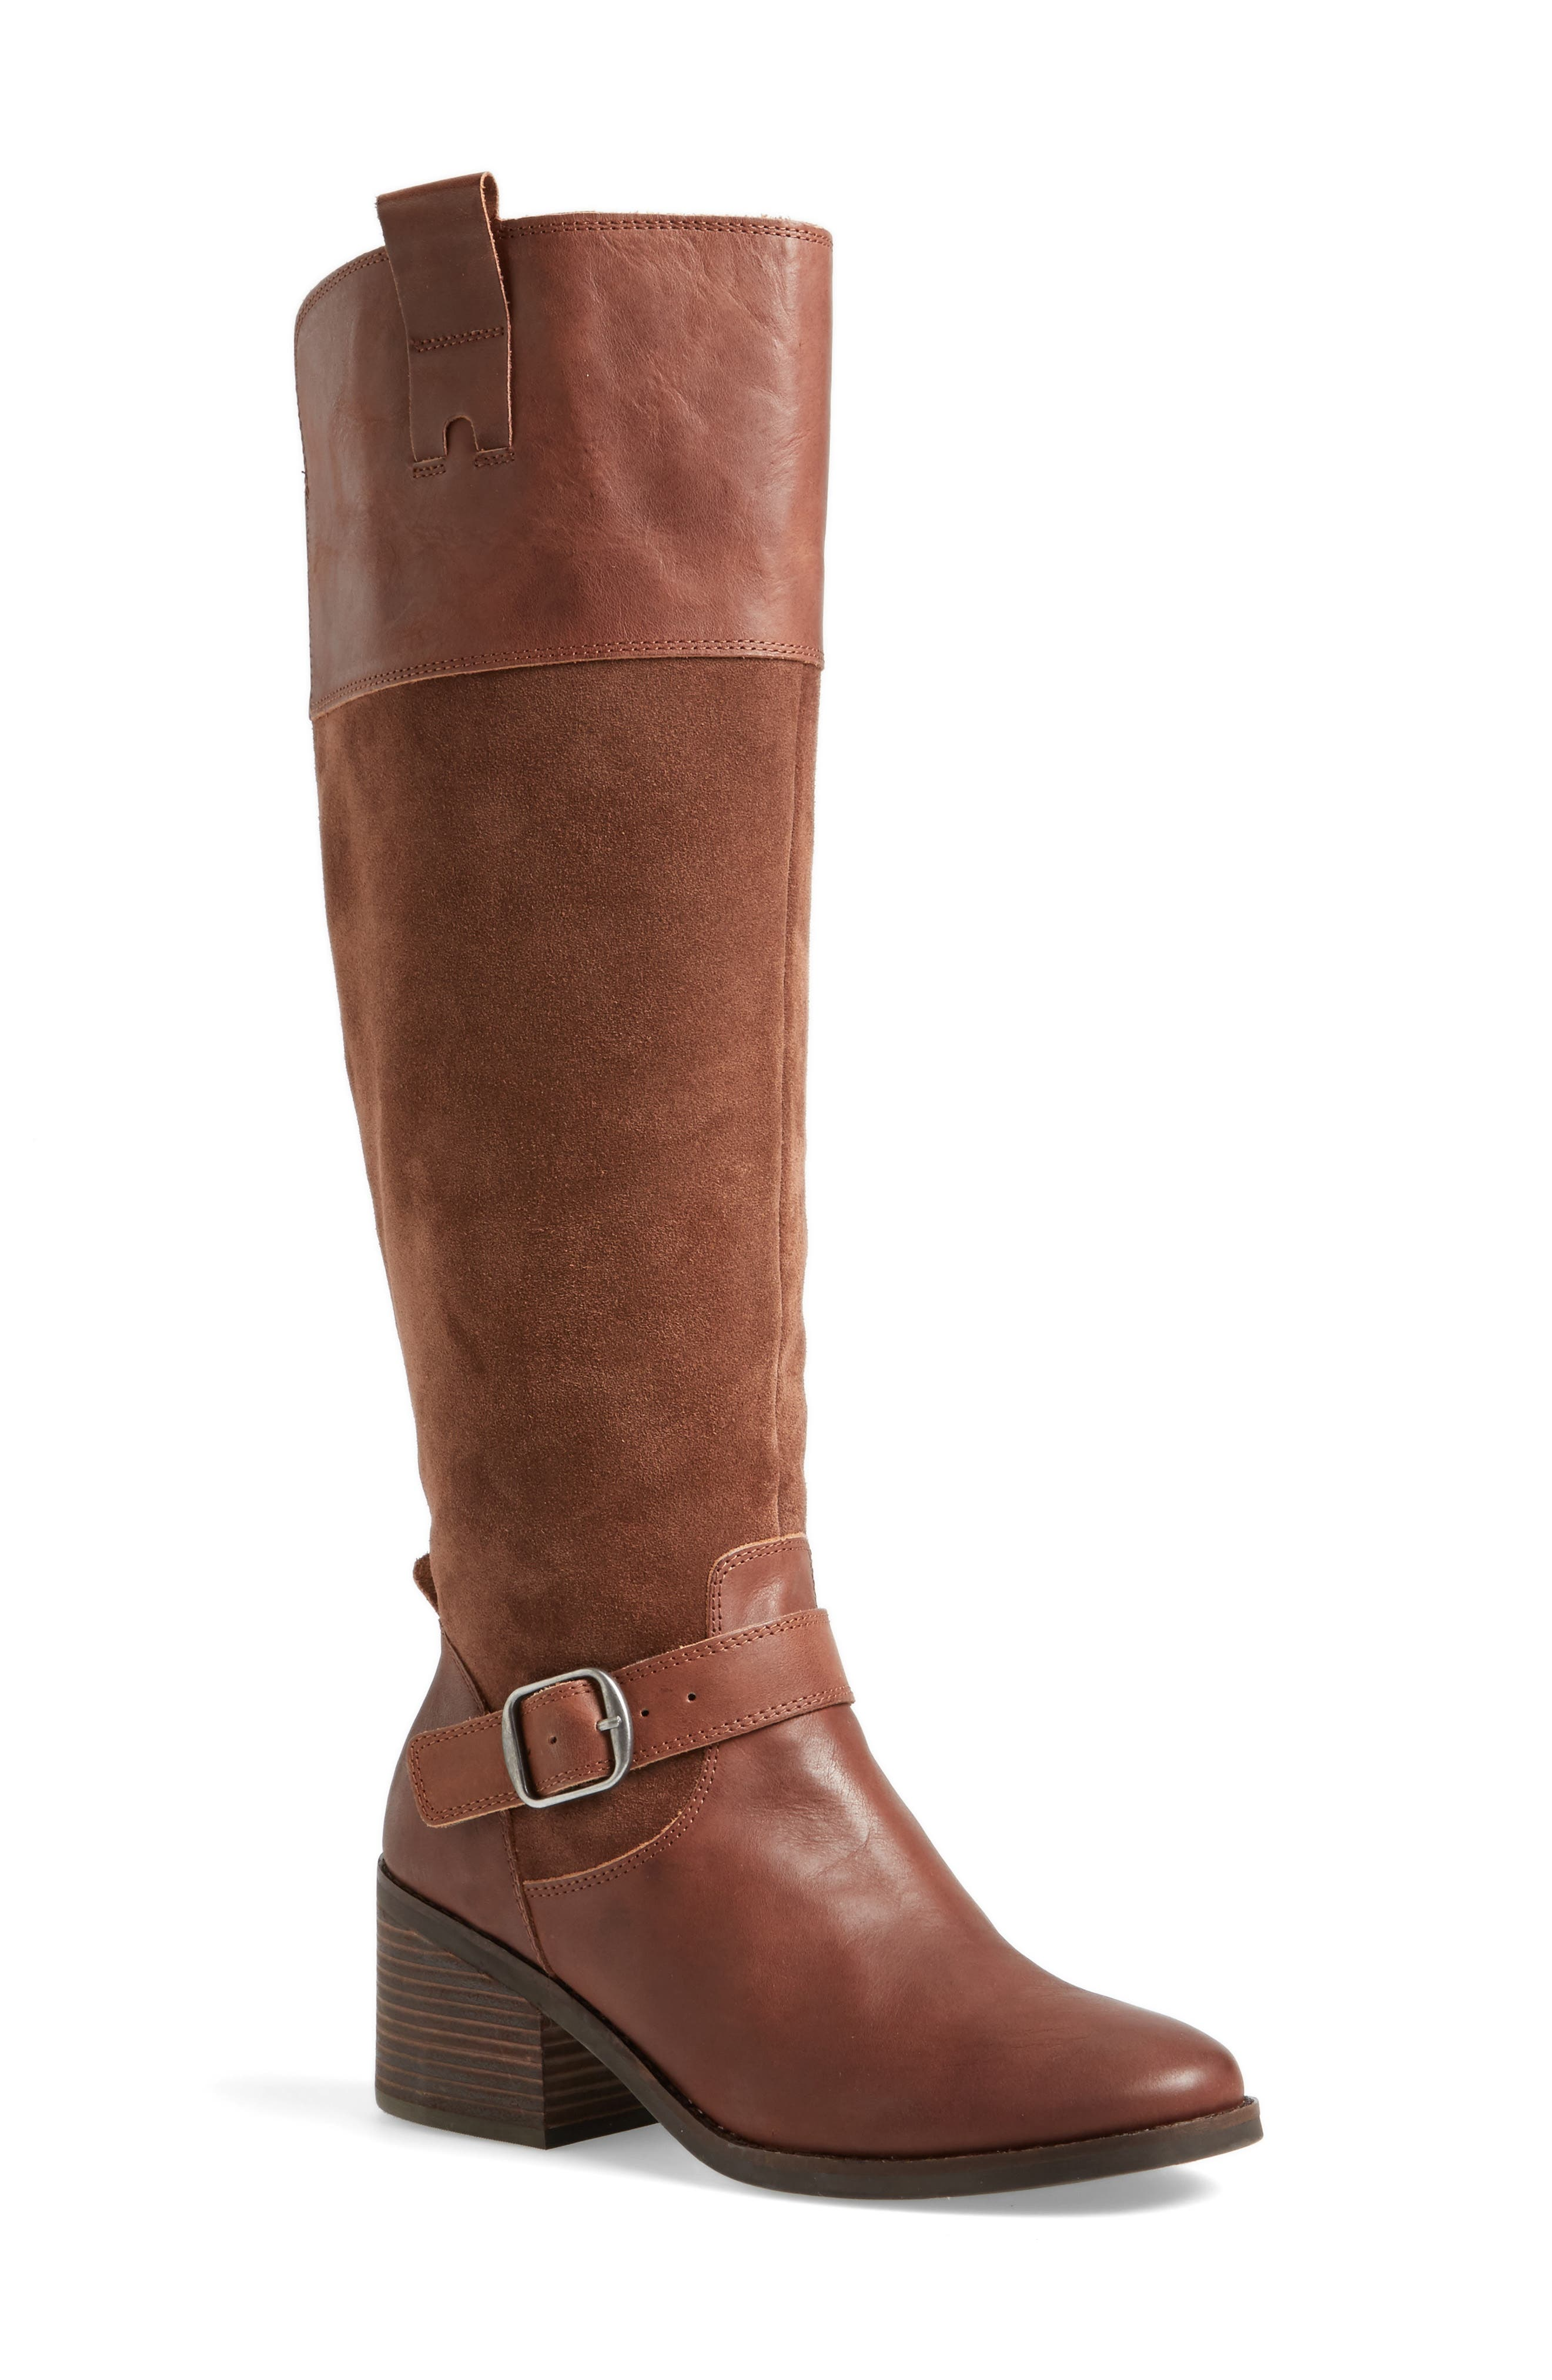 Main Image - Lucky Brand Kailan Ankle Strap Tall Boot (Women)